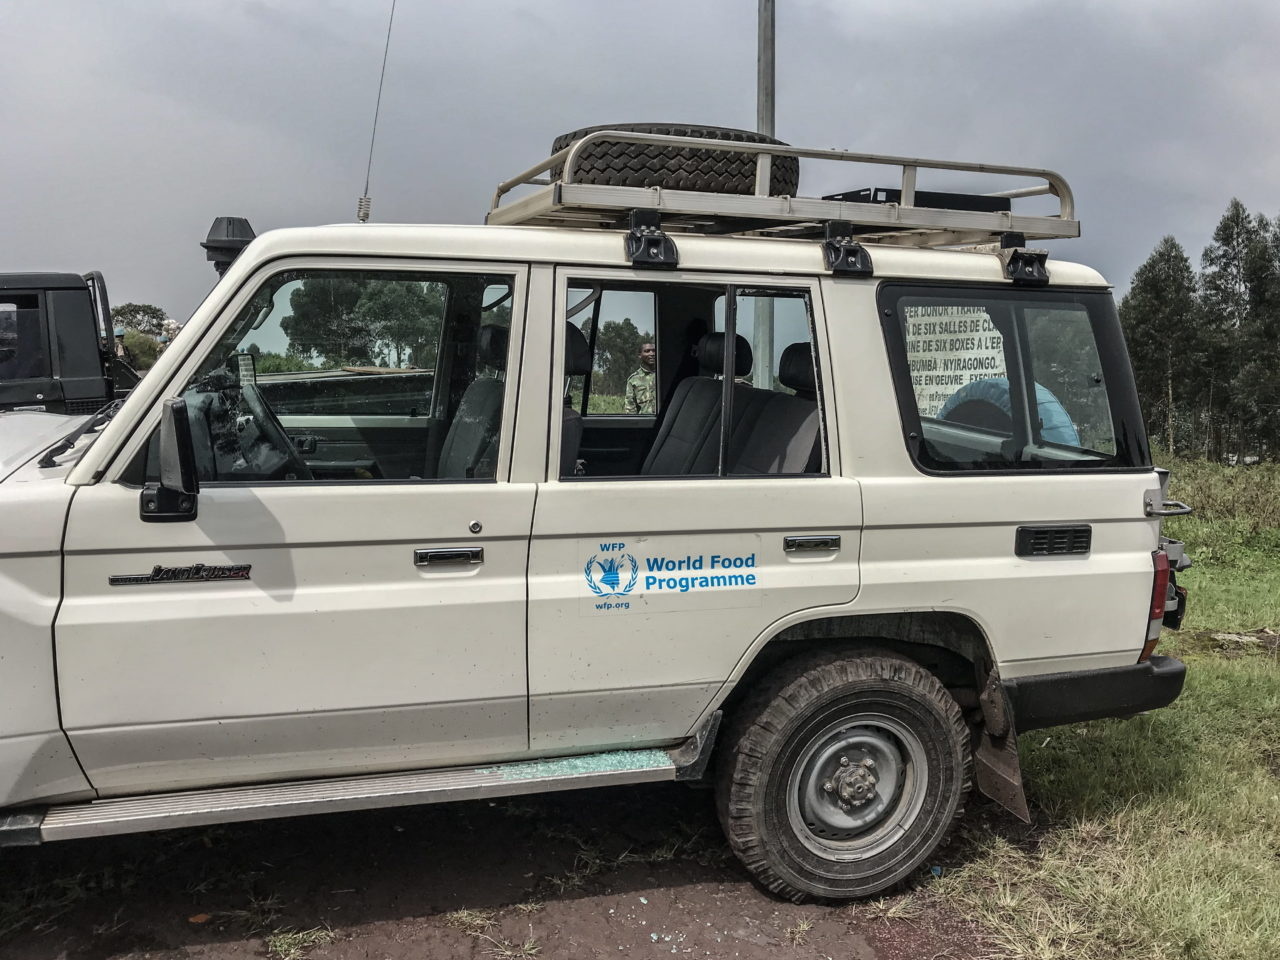 Virunga National Park, DRC, February 22nd 2021. The broken windows on the vehicle Italian ambassador to Congo, Luca Attanasio, was travelling in when he was killed in an apparent kidnapping attempt on Monday. © Austere Malivika for Fondation Carmignac